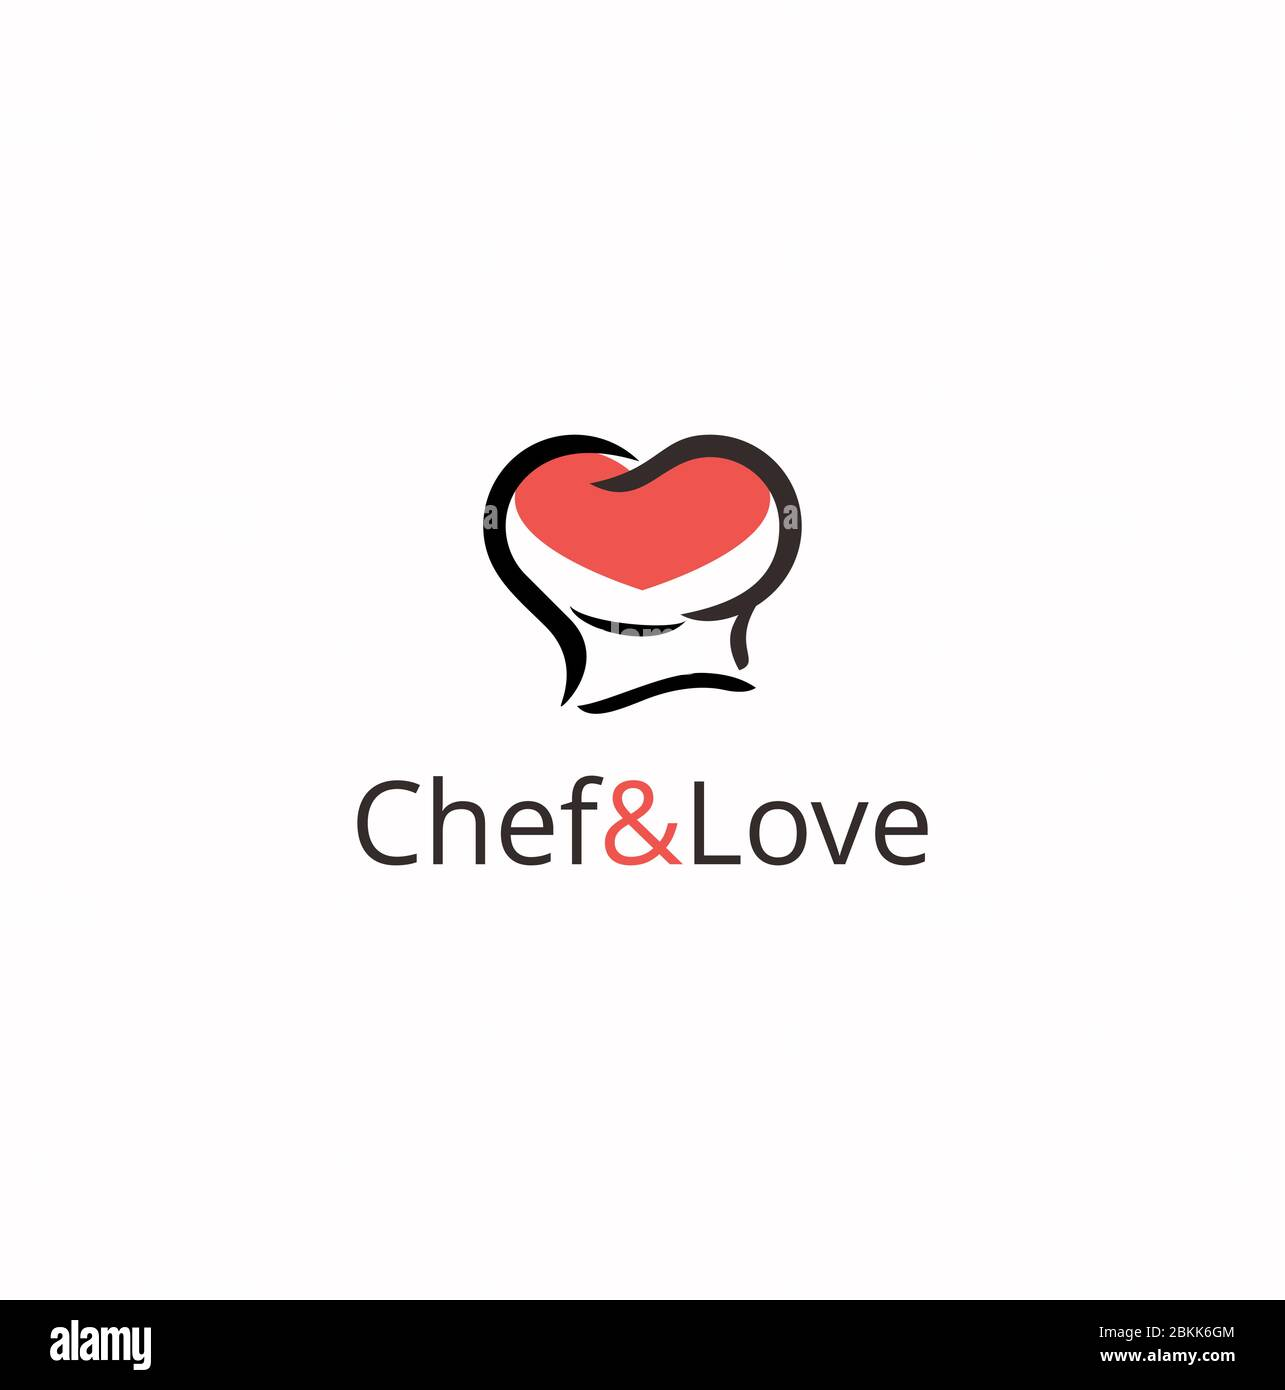 Chef Hat With Love And Heart Restaurant Logo Design Inspiration Stock Vector Image Art Alamy